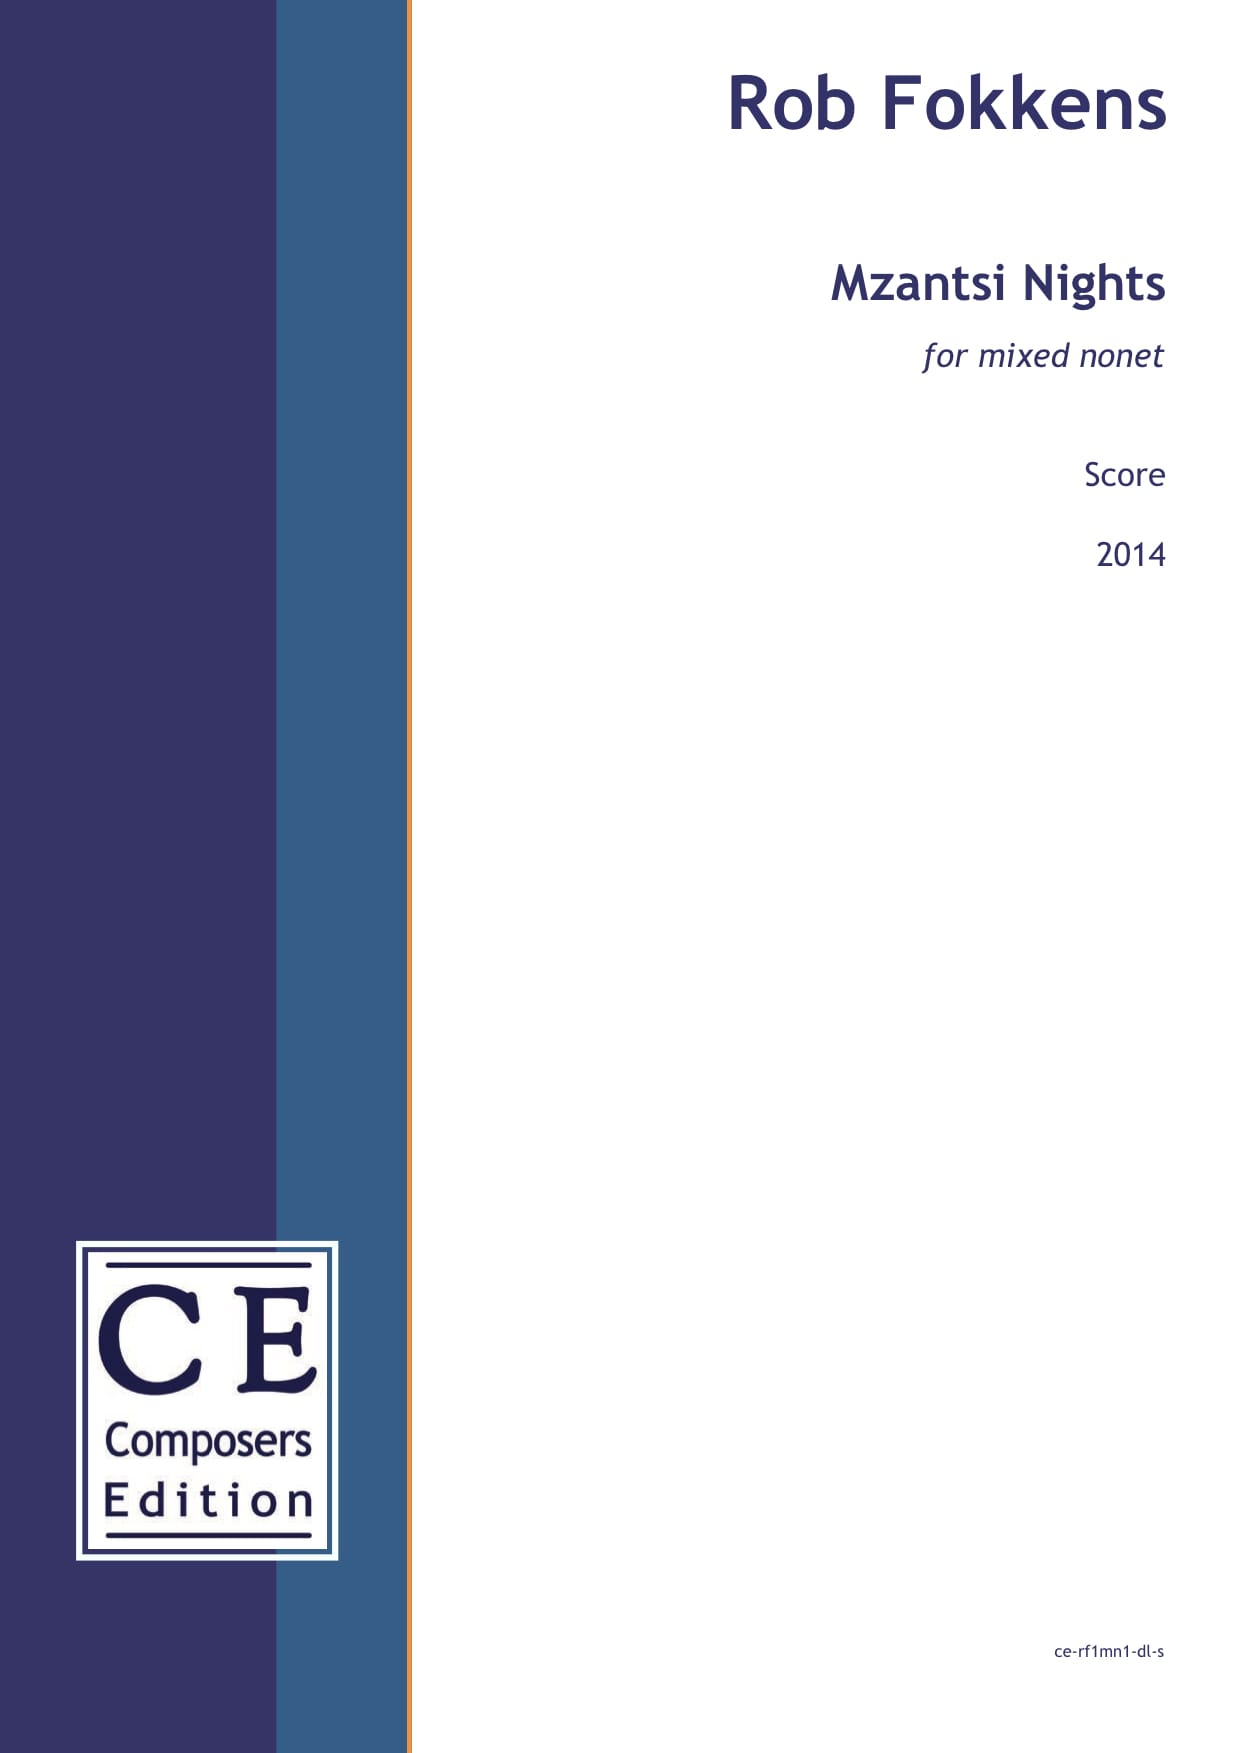 Rob Fokkens: Mzantsi Nights for mixed nonet